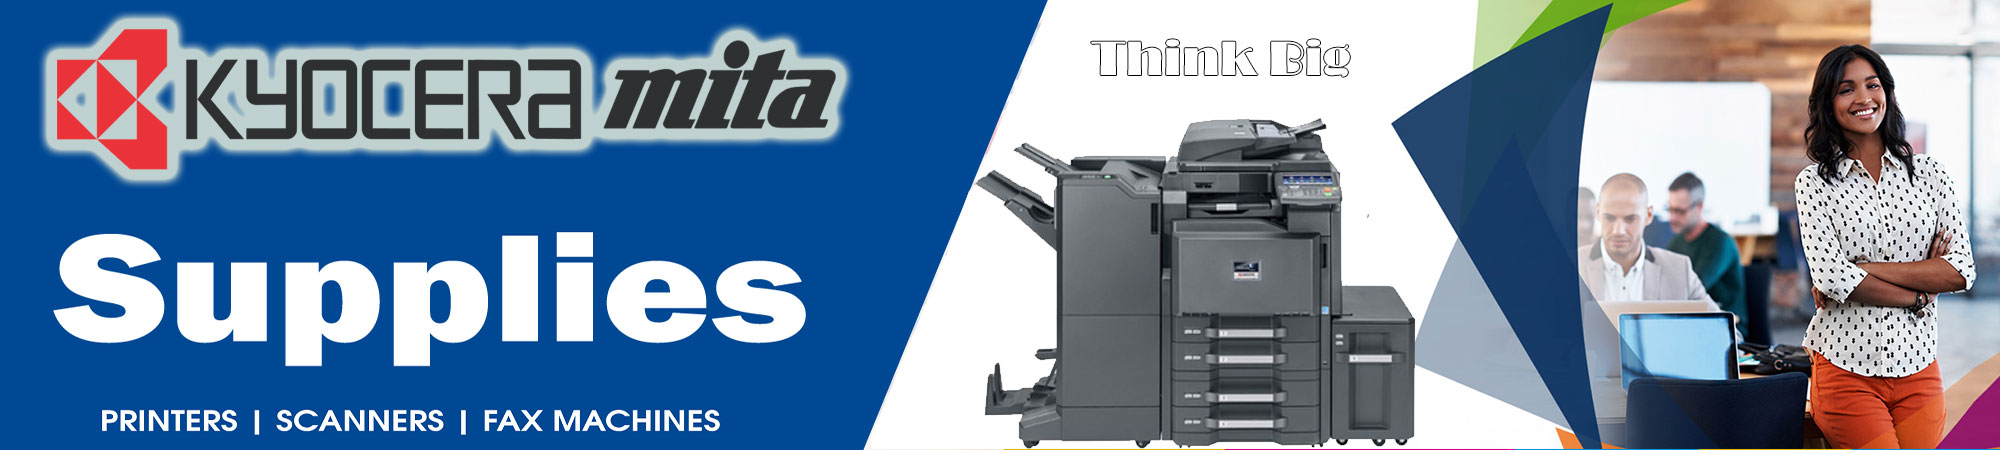 Kyocera Mita Printer Banner